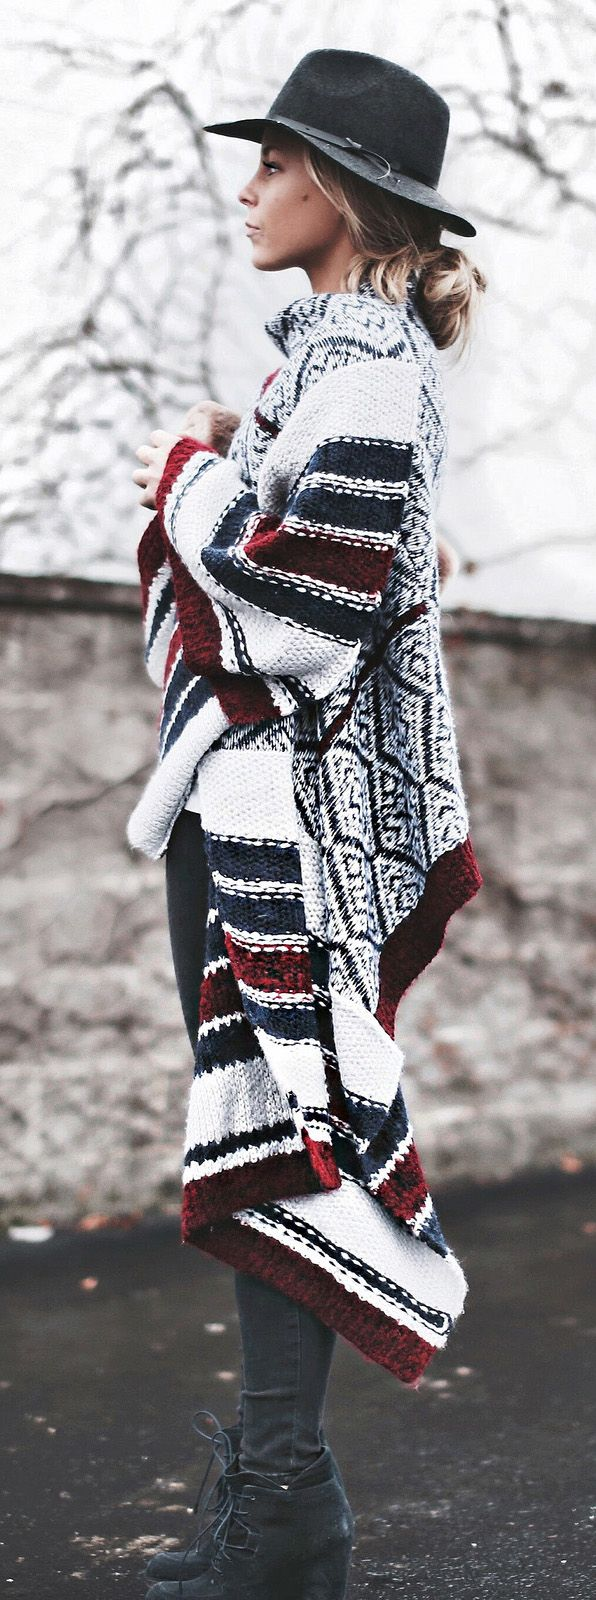 Street Style January 2015: Mary Seng is wearing a multi pattern cardigan from Anthropologie: